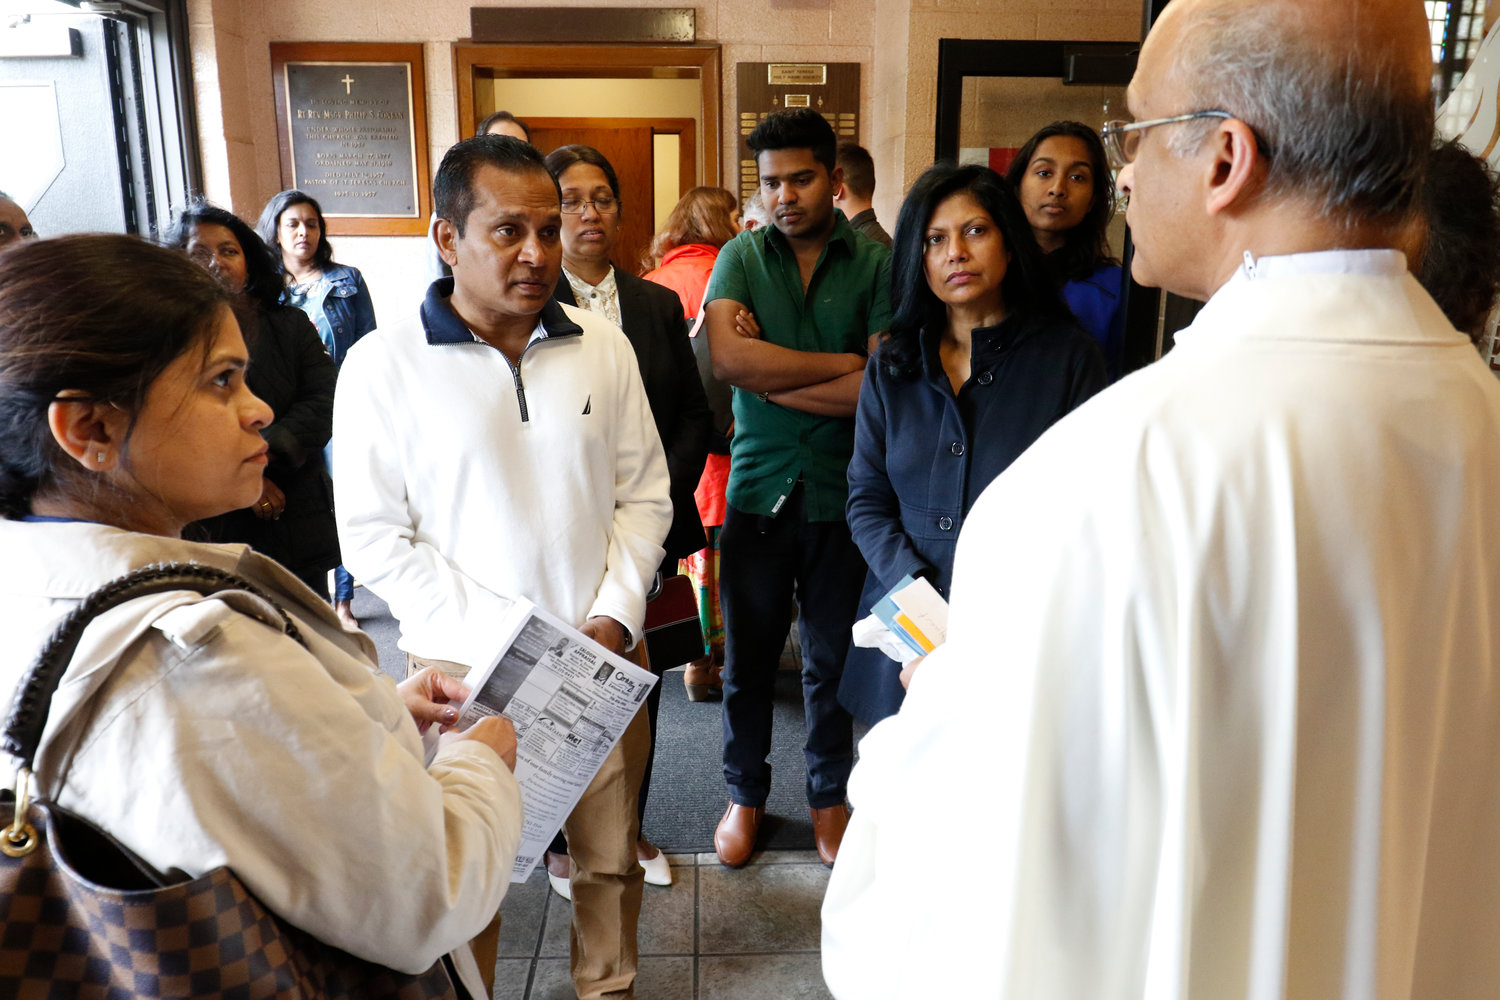 Local Sri Lankan Catholics chat with Vincentian Father John Kallattil, parochial vicar, following Mass on April 28 at St. Teresa of the Infant Jesus Church on Staten Island.